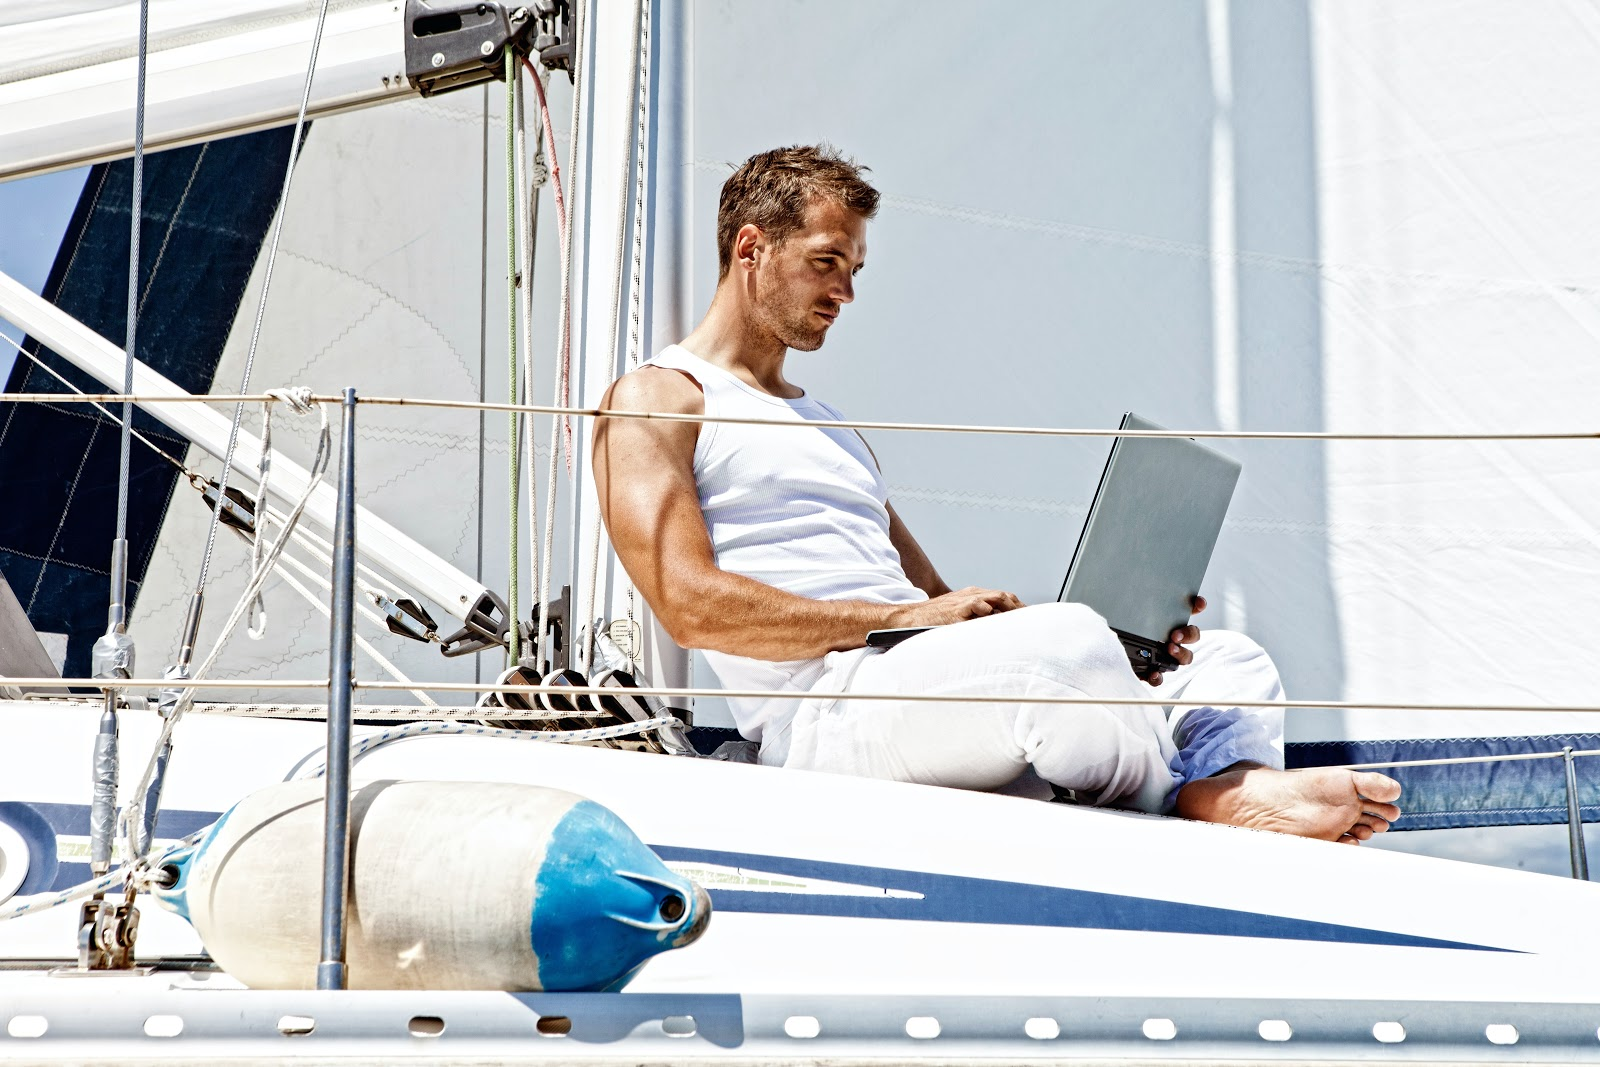 A man on the computer on a boat.